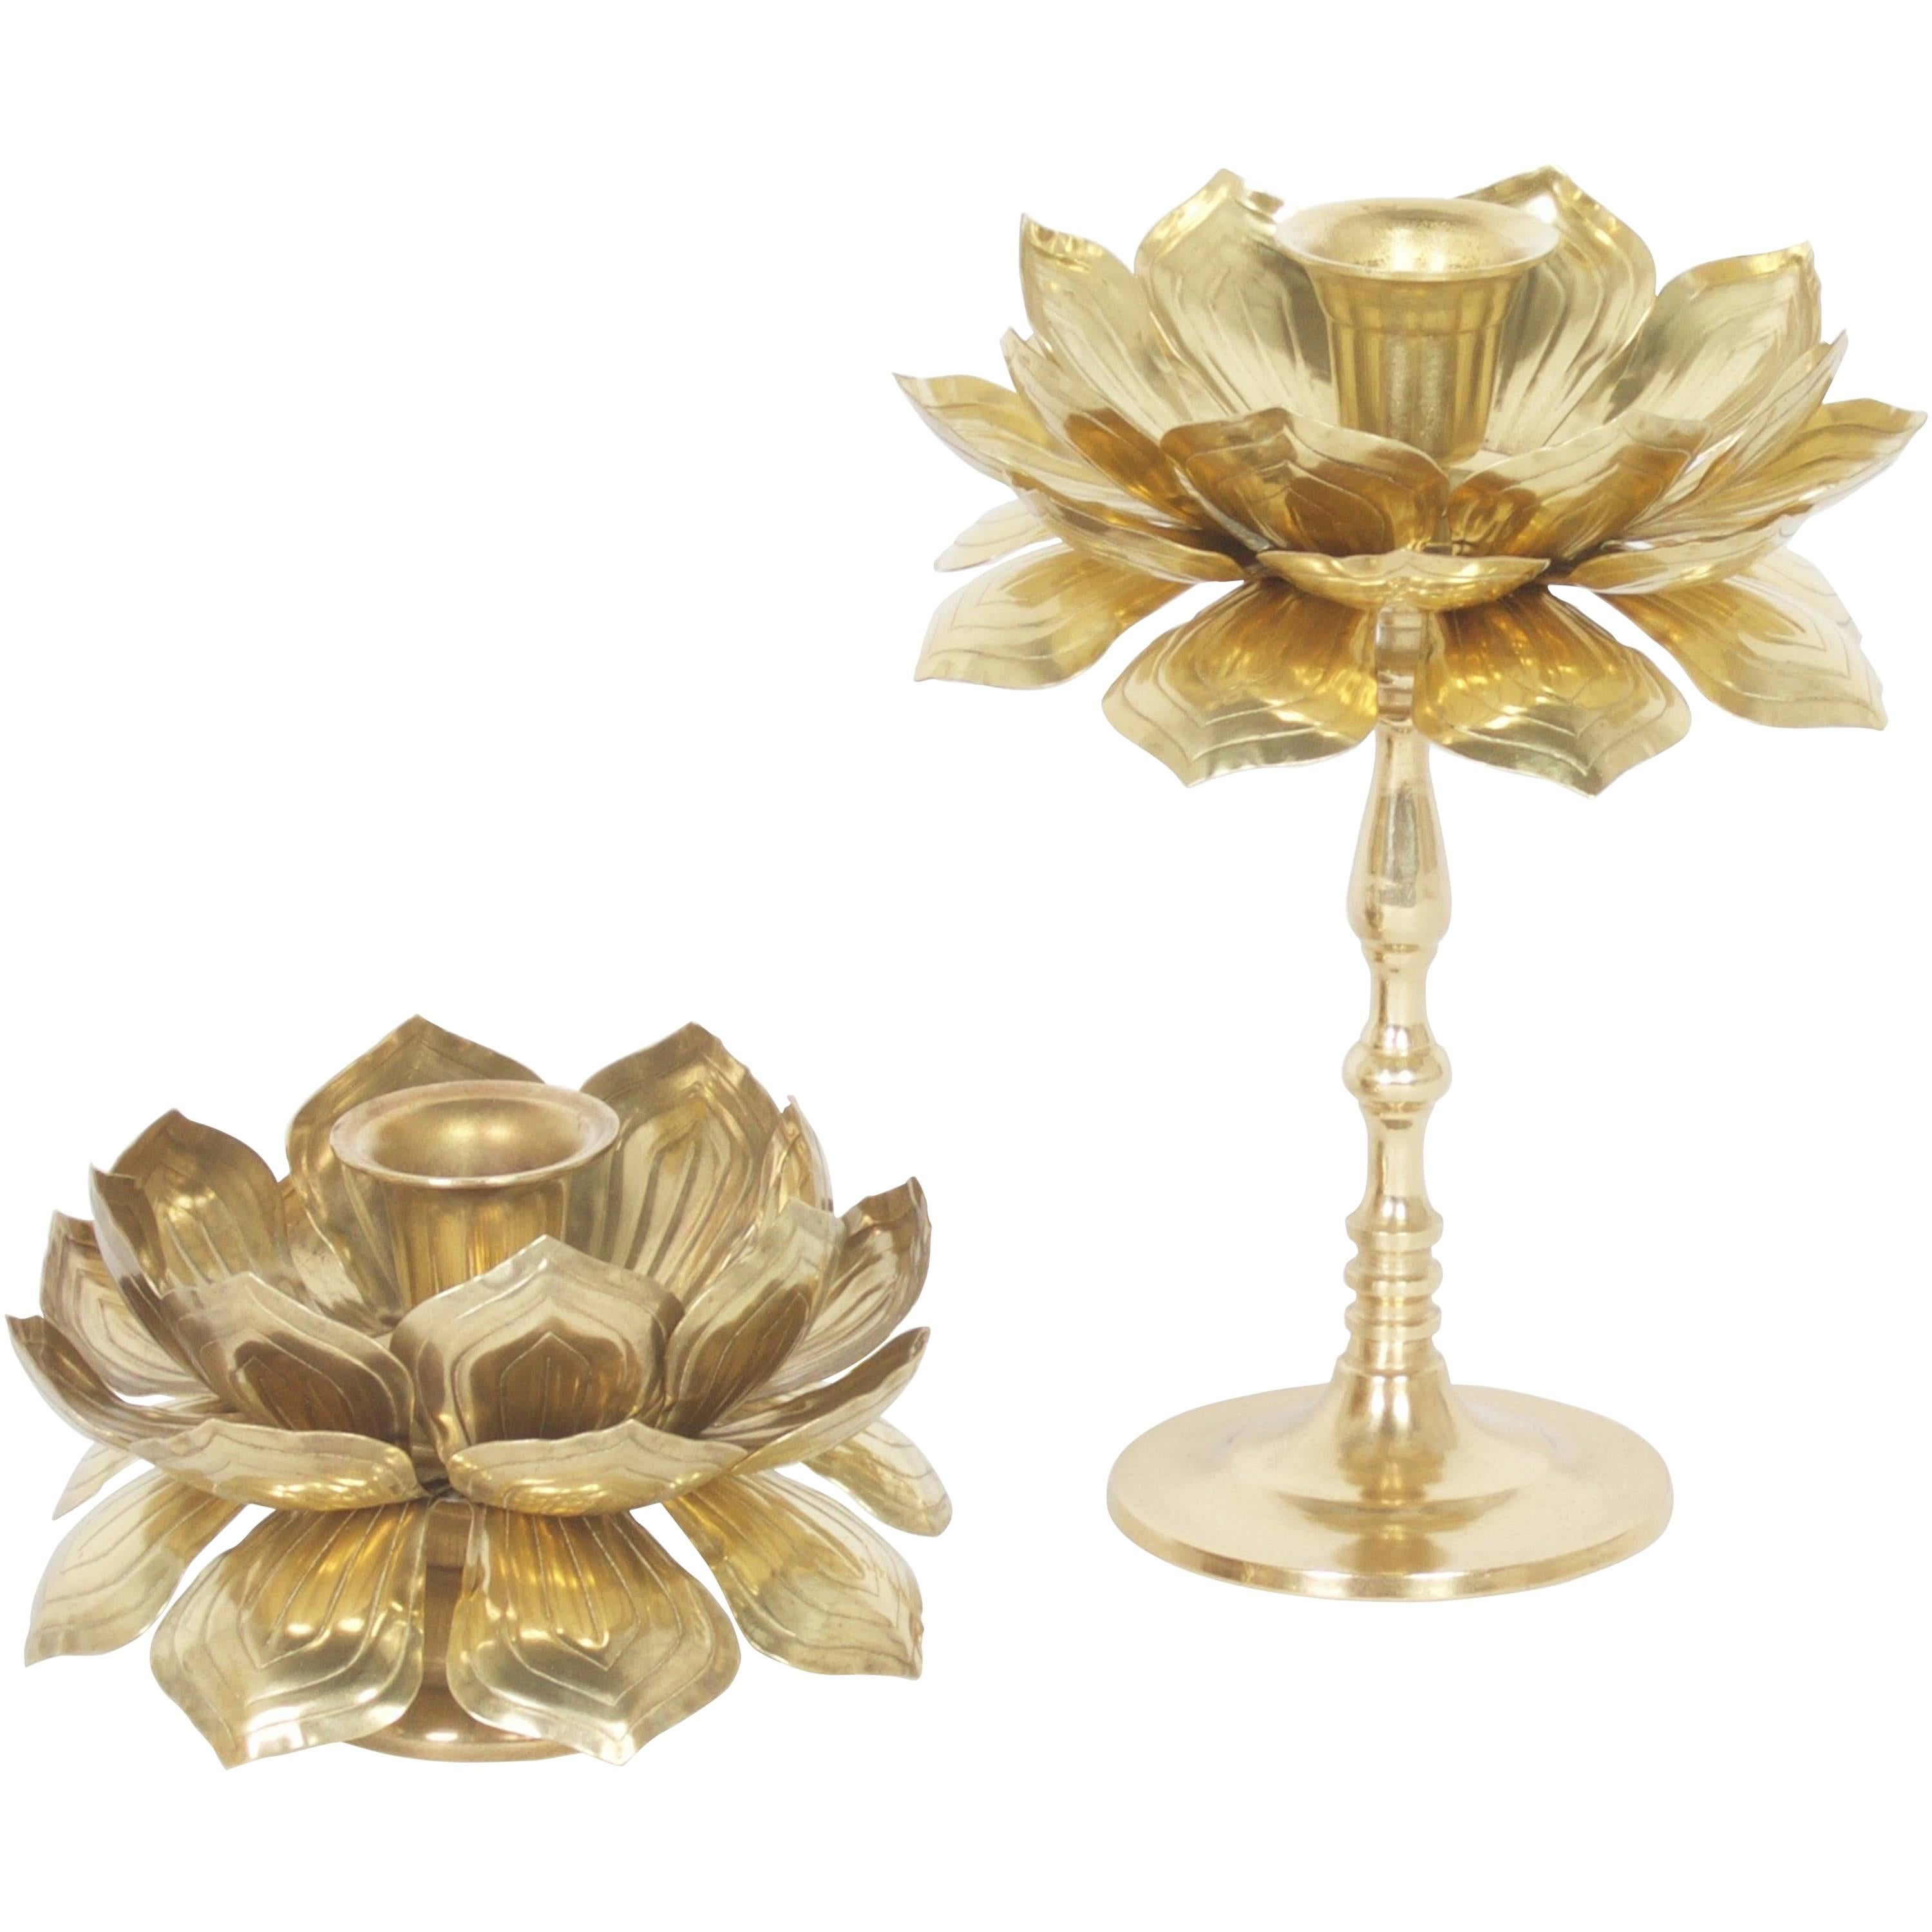 Two Brass Lotus Candleholders